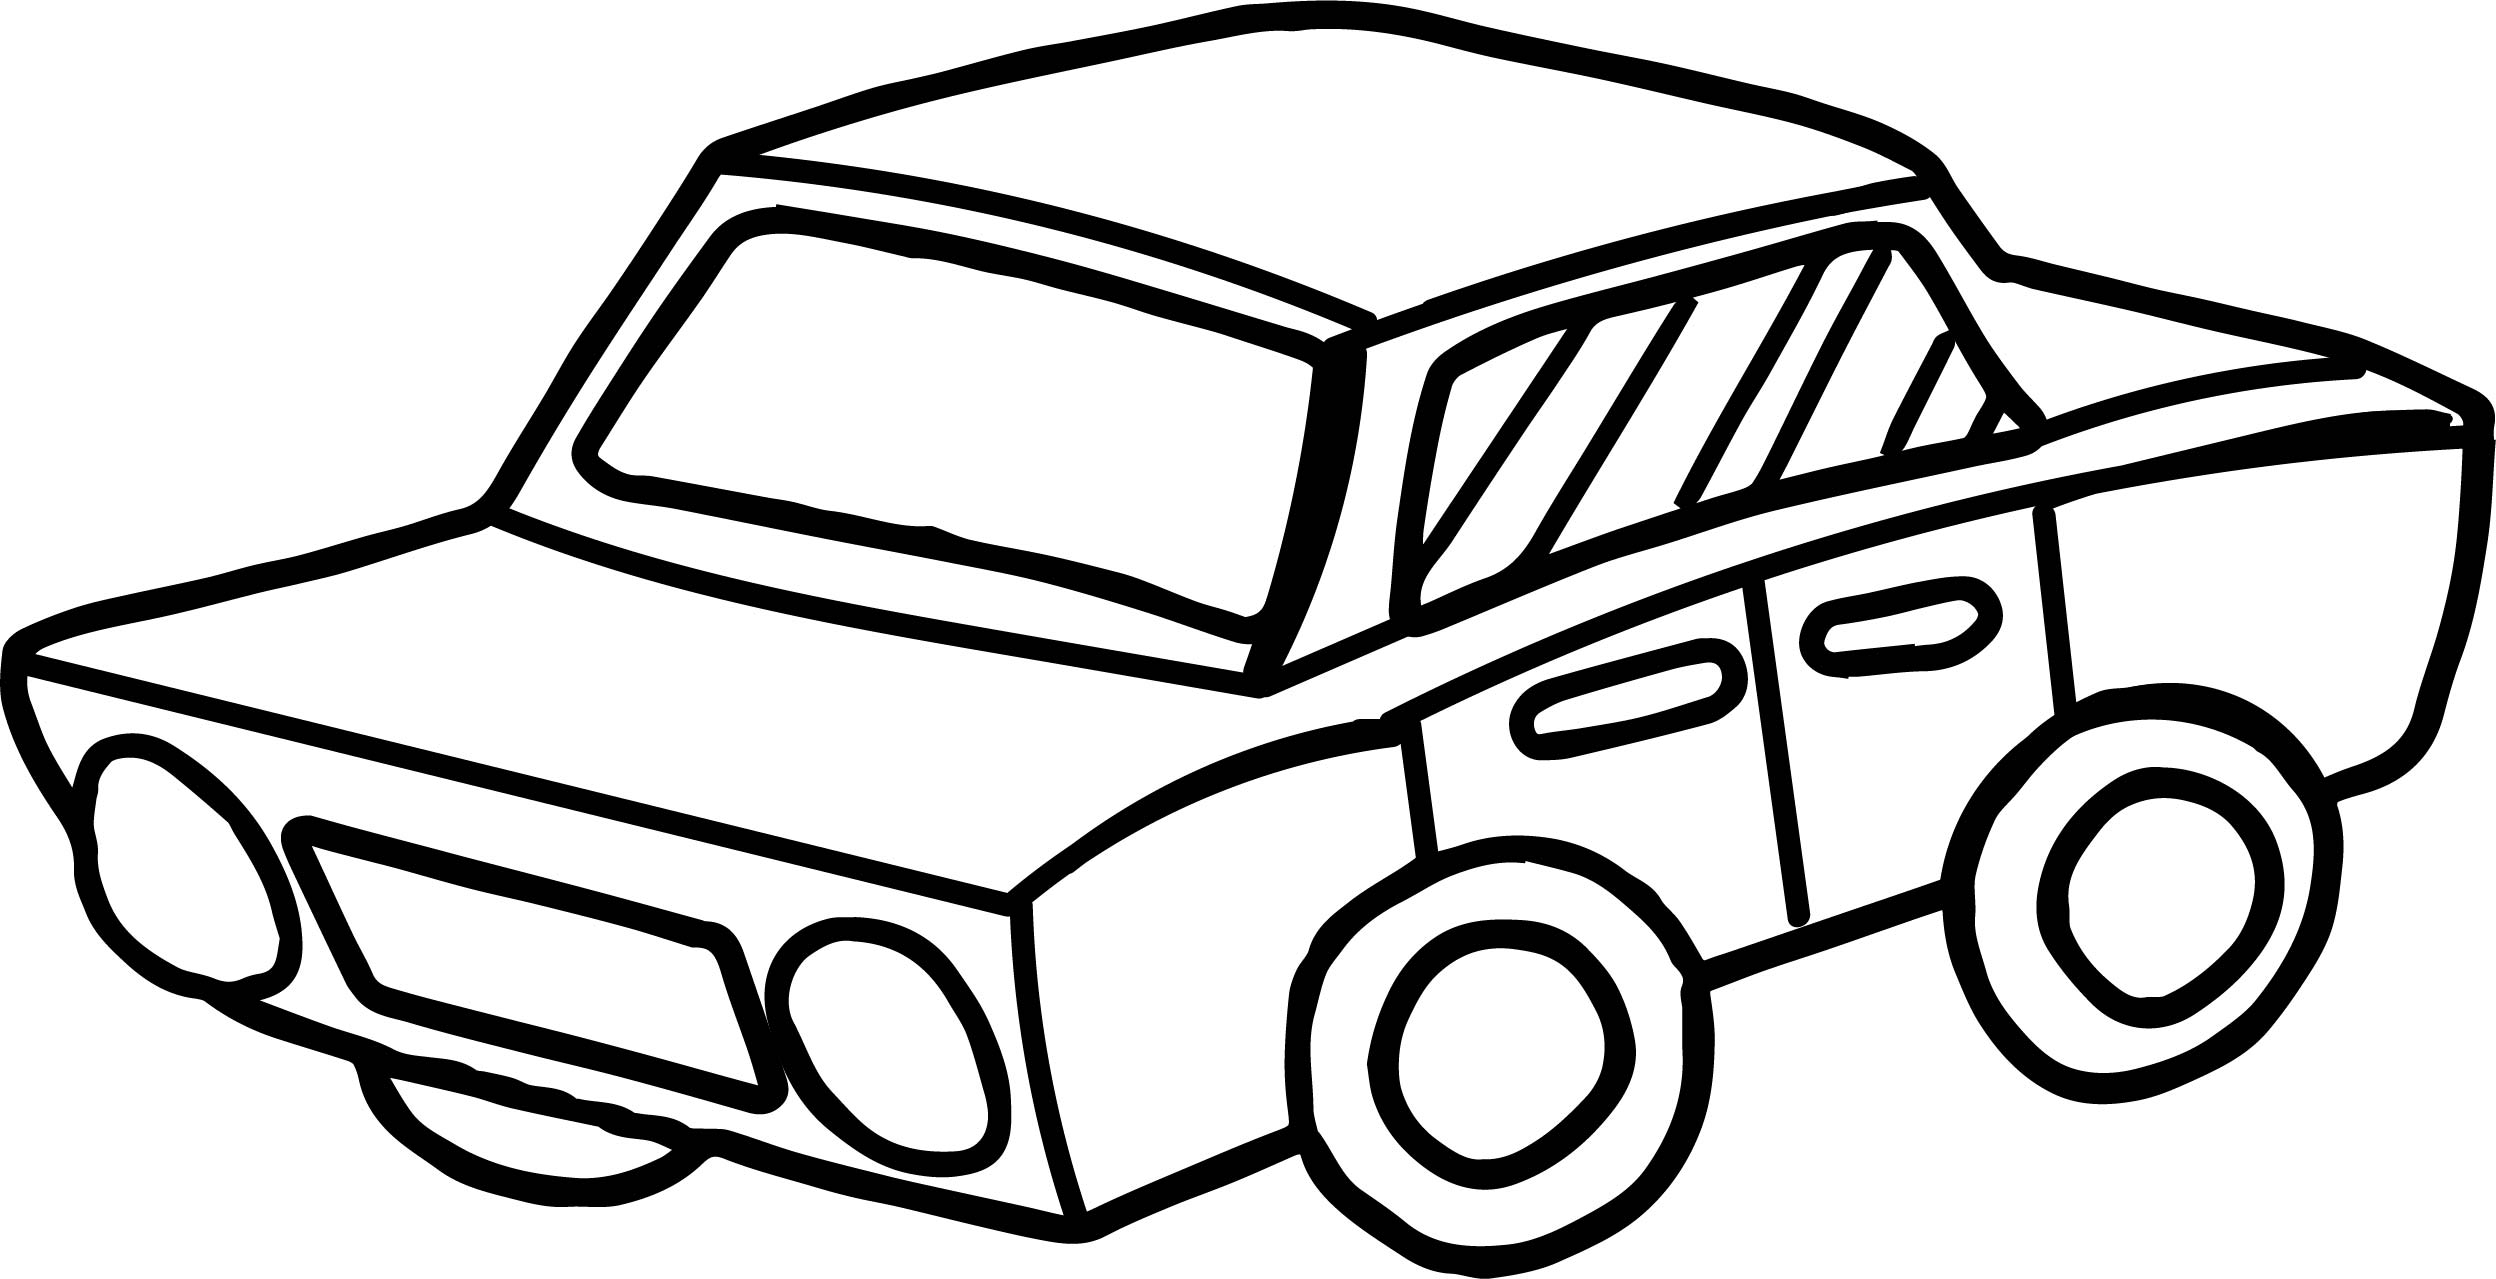 2496x1279 Toy Car Perspective Coloring Page Wecoloringpage